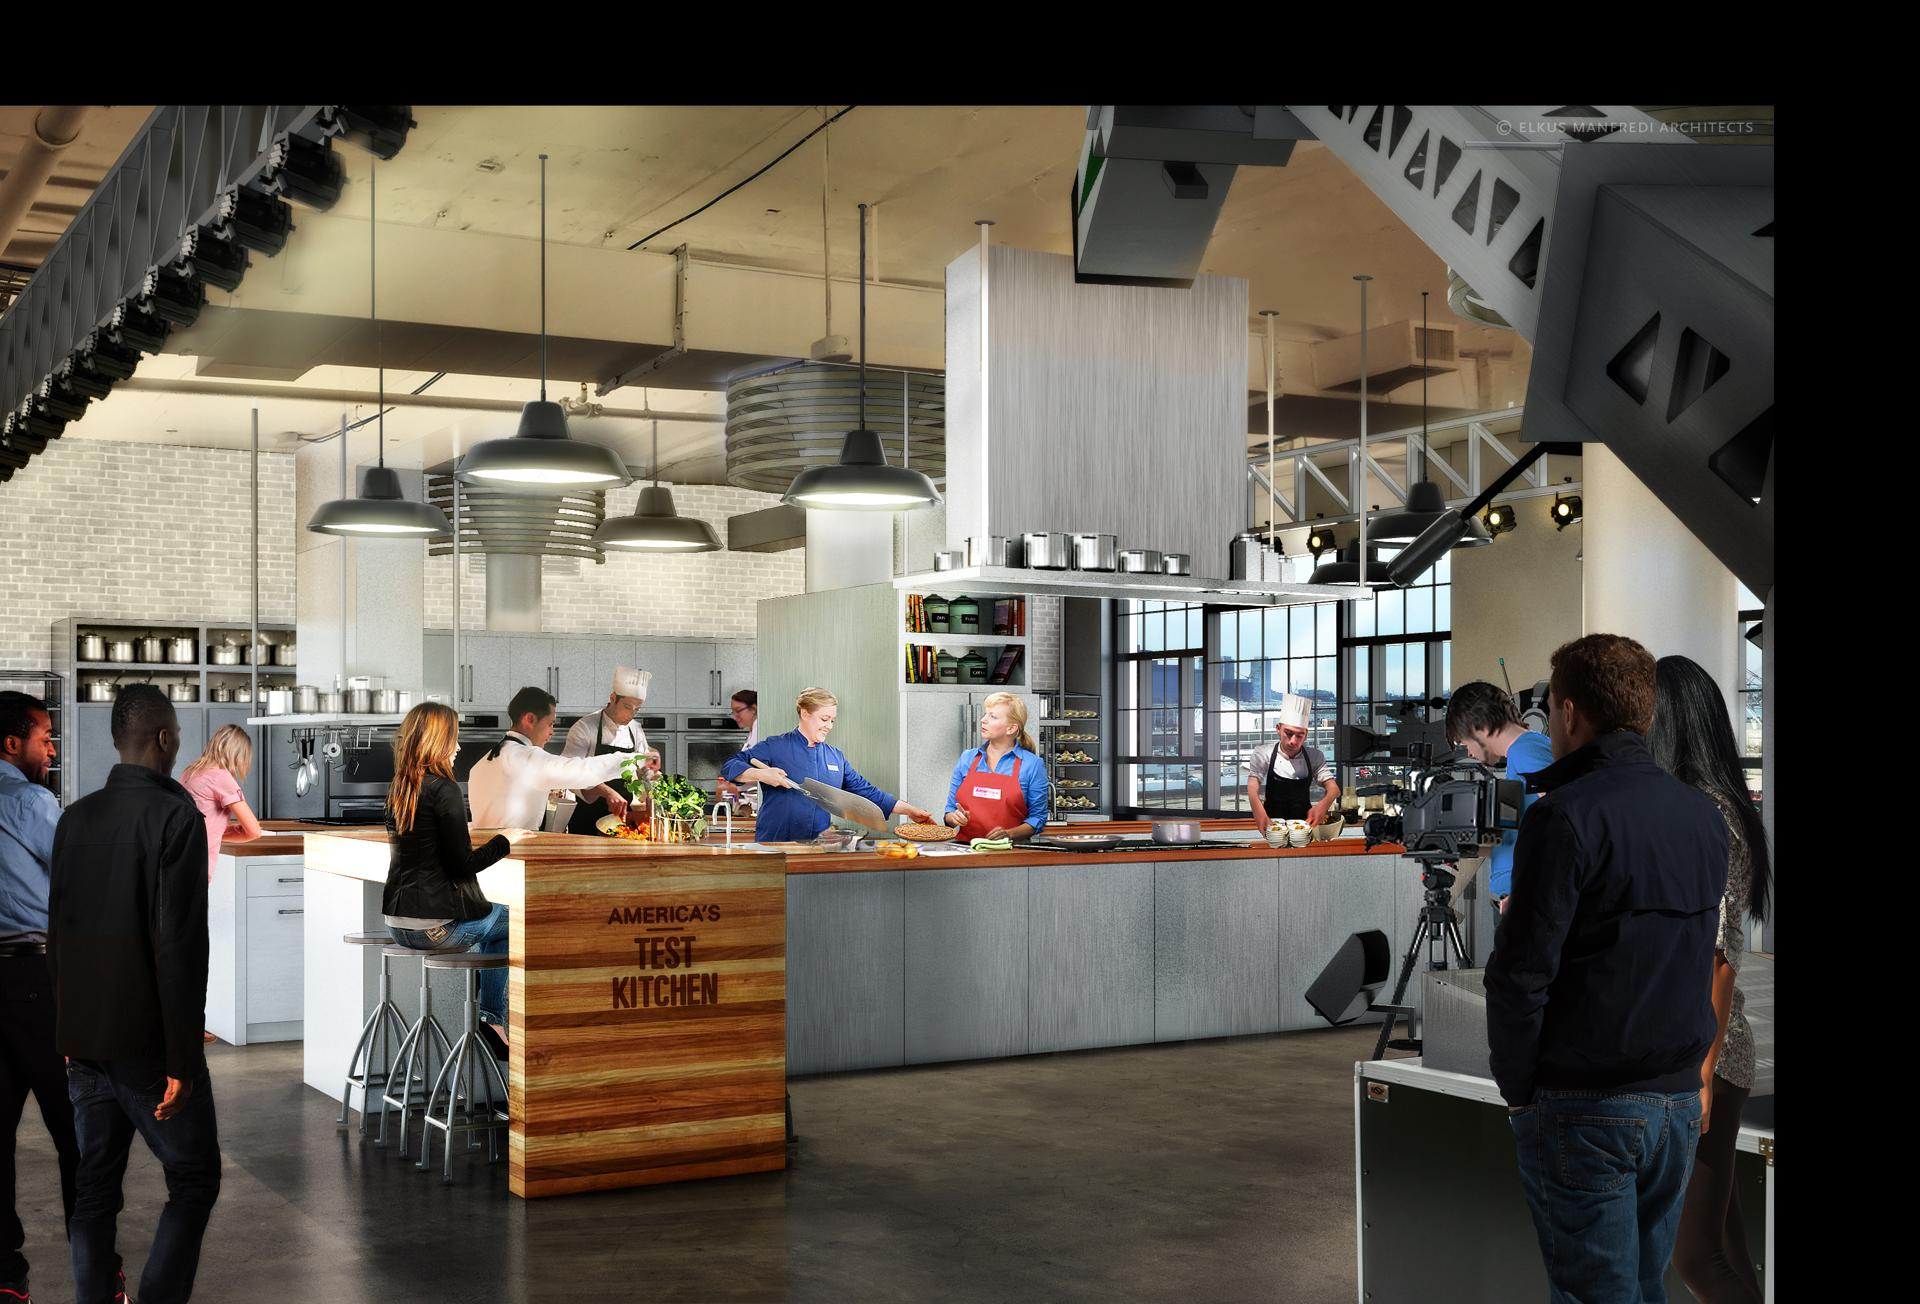 Test Kitchen Design America's Test Kitchen Will Relocate To The Seaport  The Boston Globe